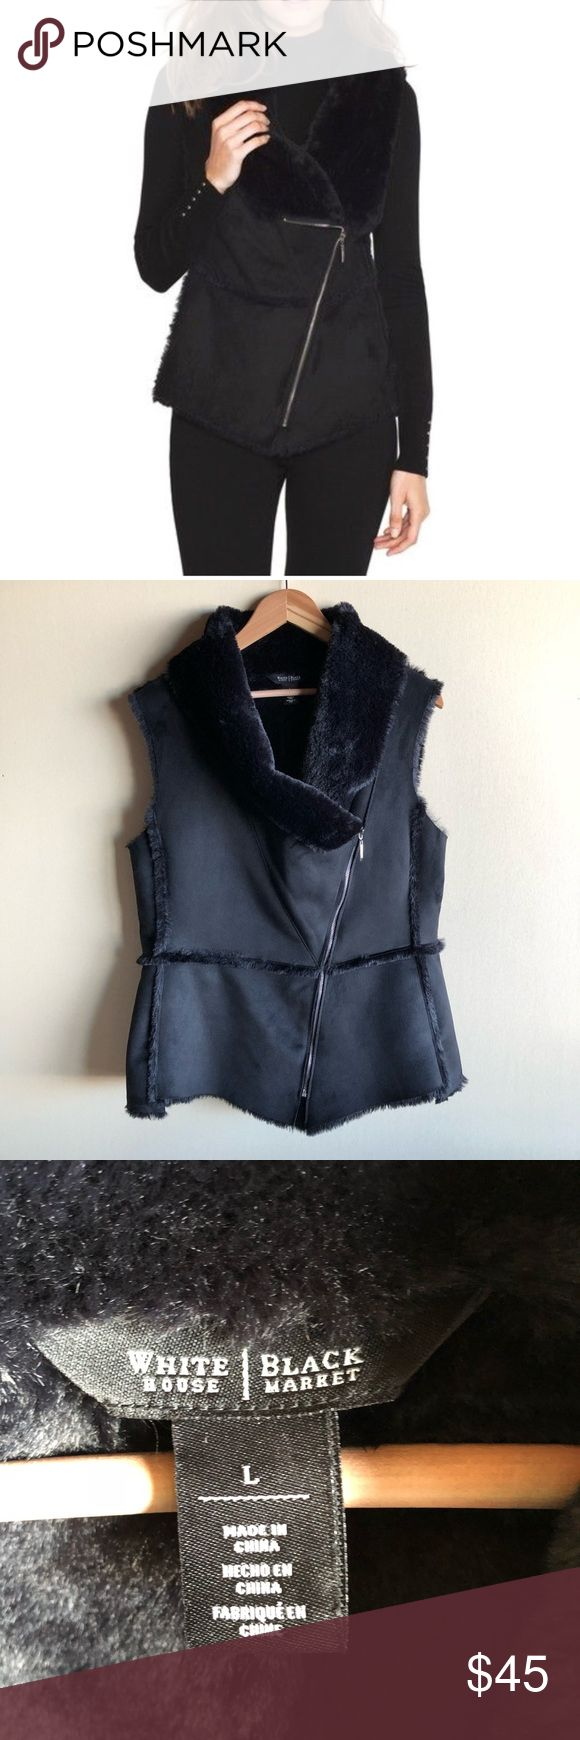 "White House Black Market faux shearling zip vest Super soft and cozy black vest by WHBM in faux shearling and lined in faux fur. Excellent condition! Measures 21"" from underarm to underarm and 27"" long. ""Our faux shearling vest is sure to be your favorite finishing touch for dressed up or down looks— a cozy layer when paired with a long sleeve tee and distressed denim or a flowy pant and stiletto boots. Polyester. Dry clean."" White House Black Market Jackets & Coats Vests"